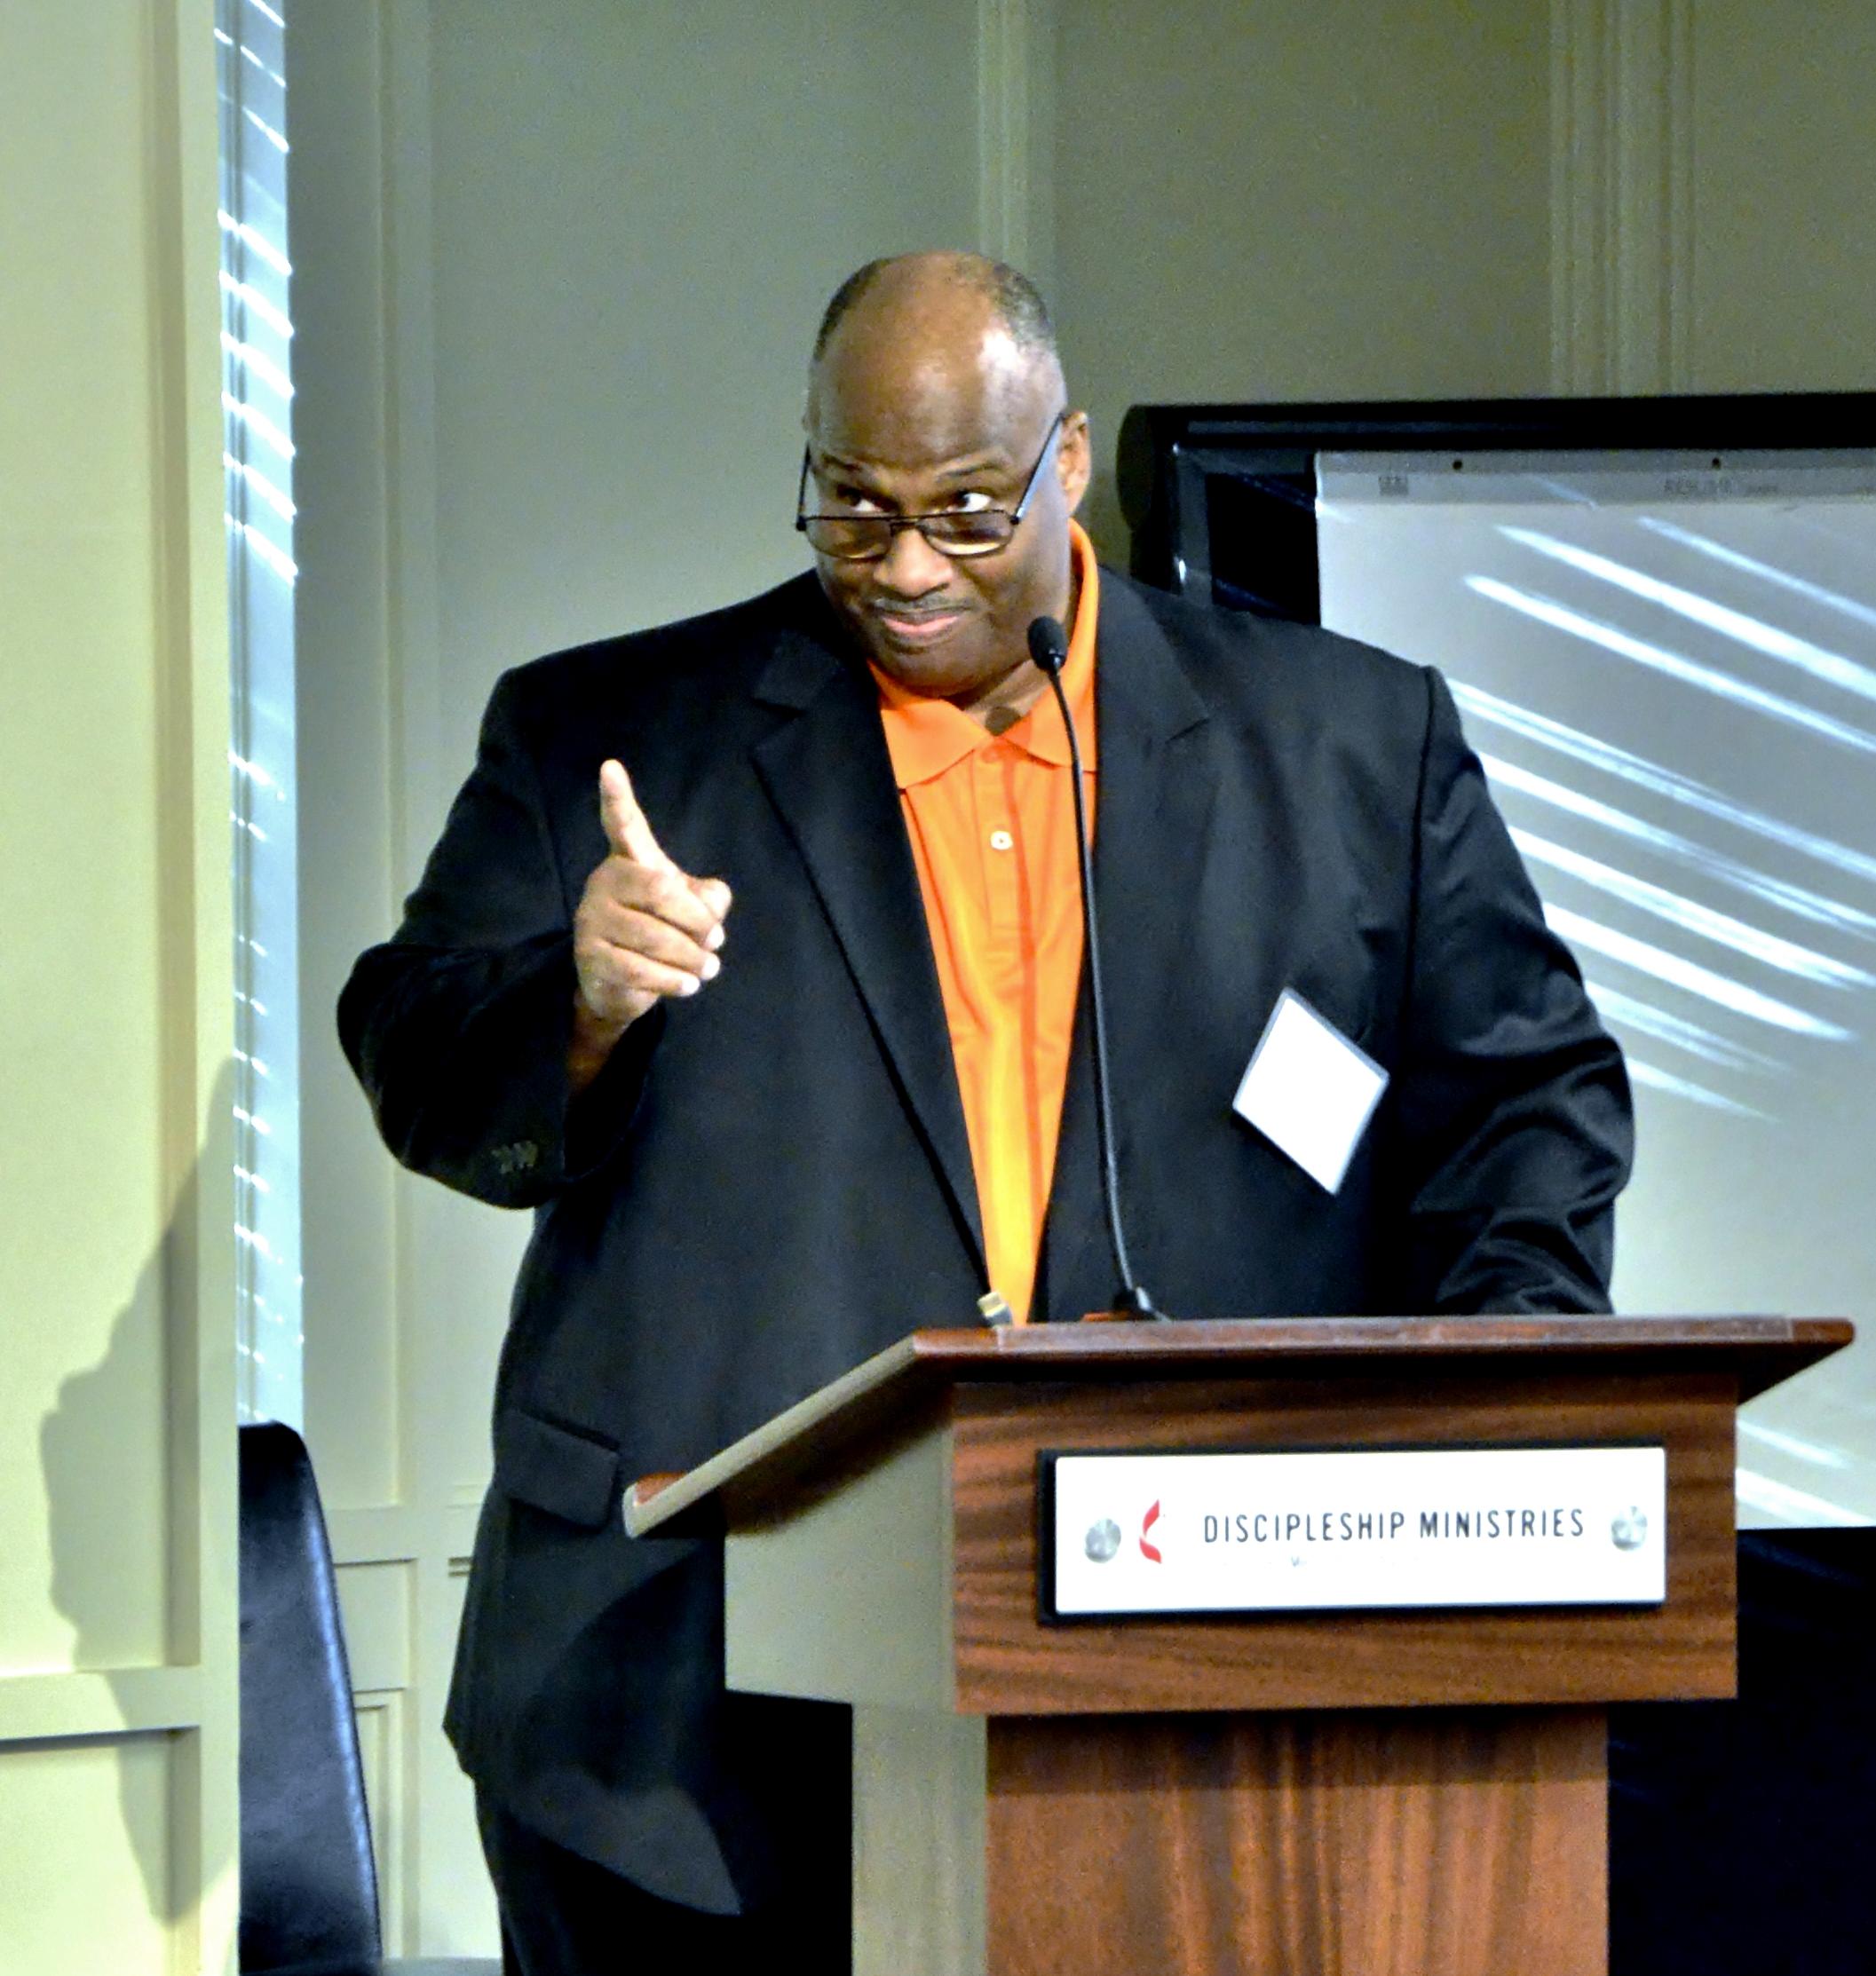 Bishop Darryl B. Starnes Sr. of the African Methodist Episcopal Zion Church leads opening devotion at the North American ecumenical evangelism conference. He encouraged Christians to take a broad approach to evangelism, sharing the good news by word, service and signs. Photo© by Tom Gillem